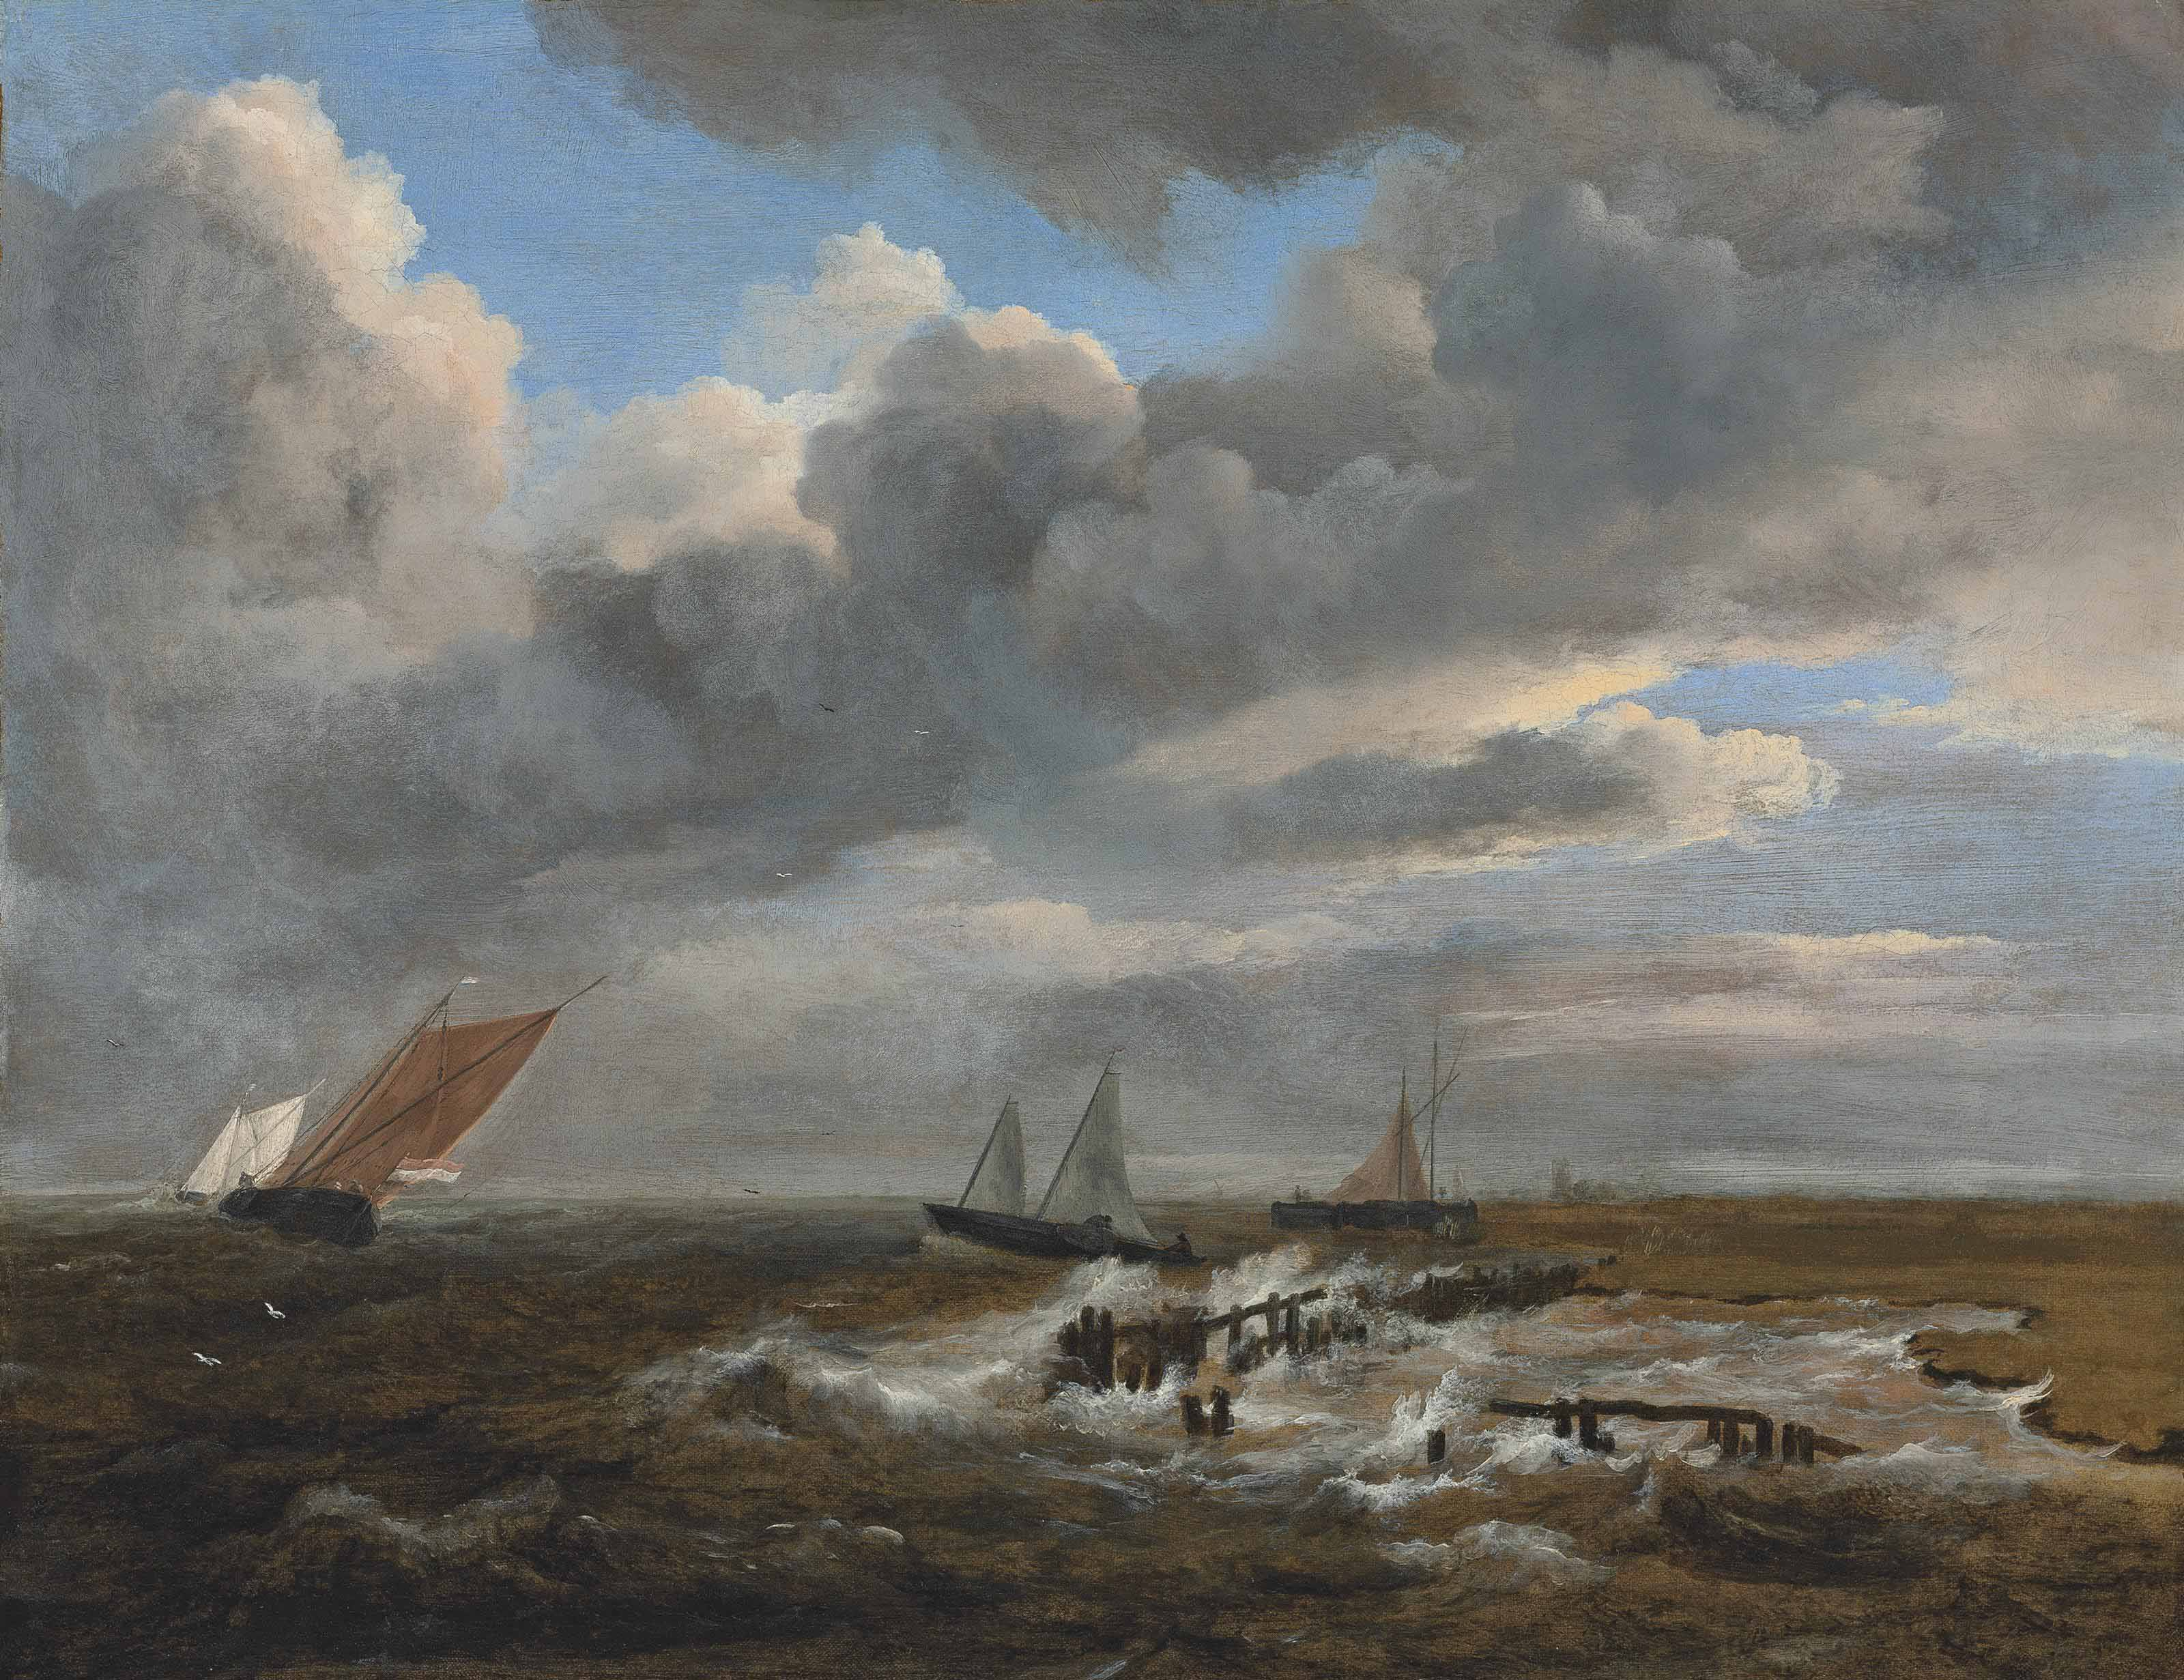 An estuary with smalschips and a galjoot in choppy waters, a village with a church beyond